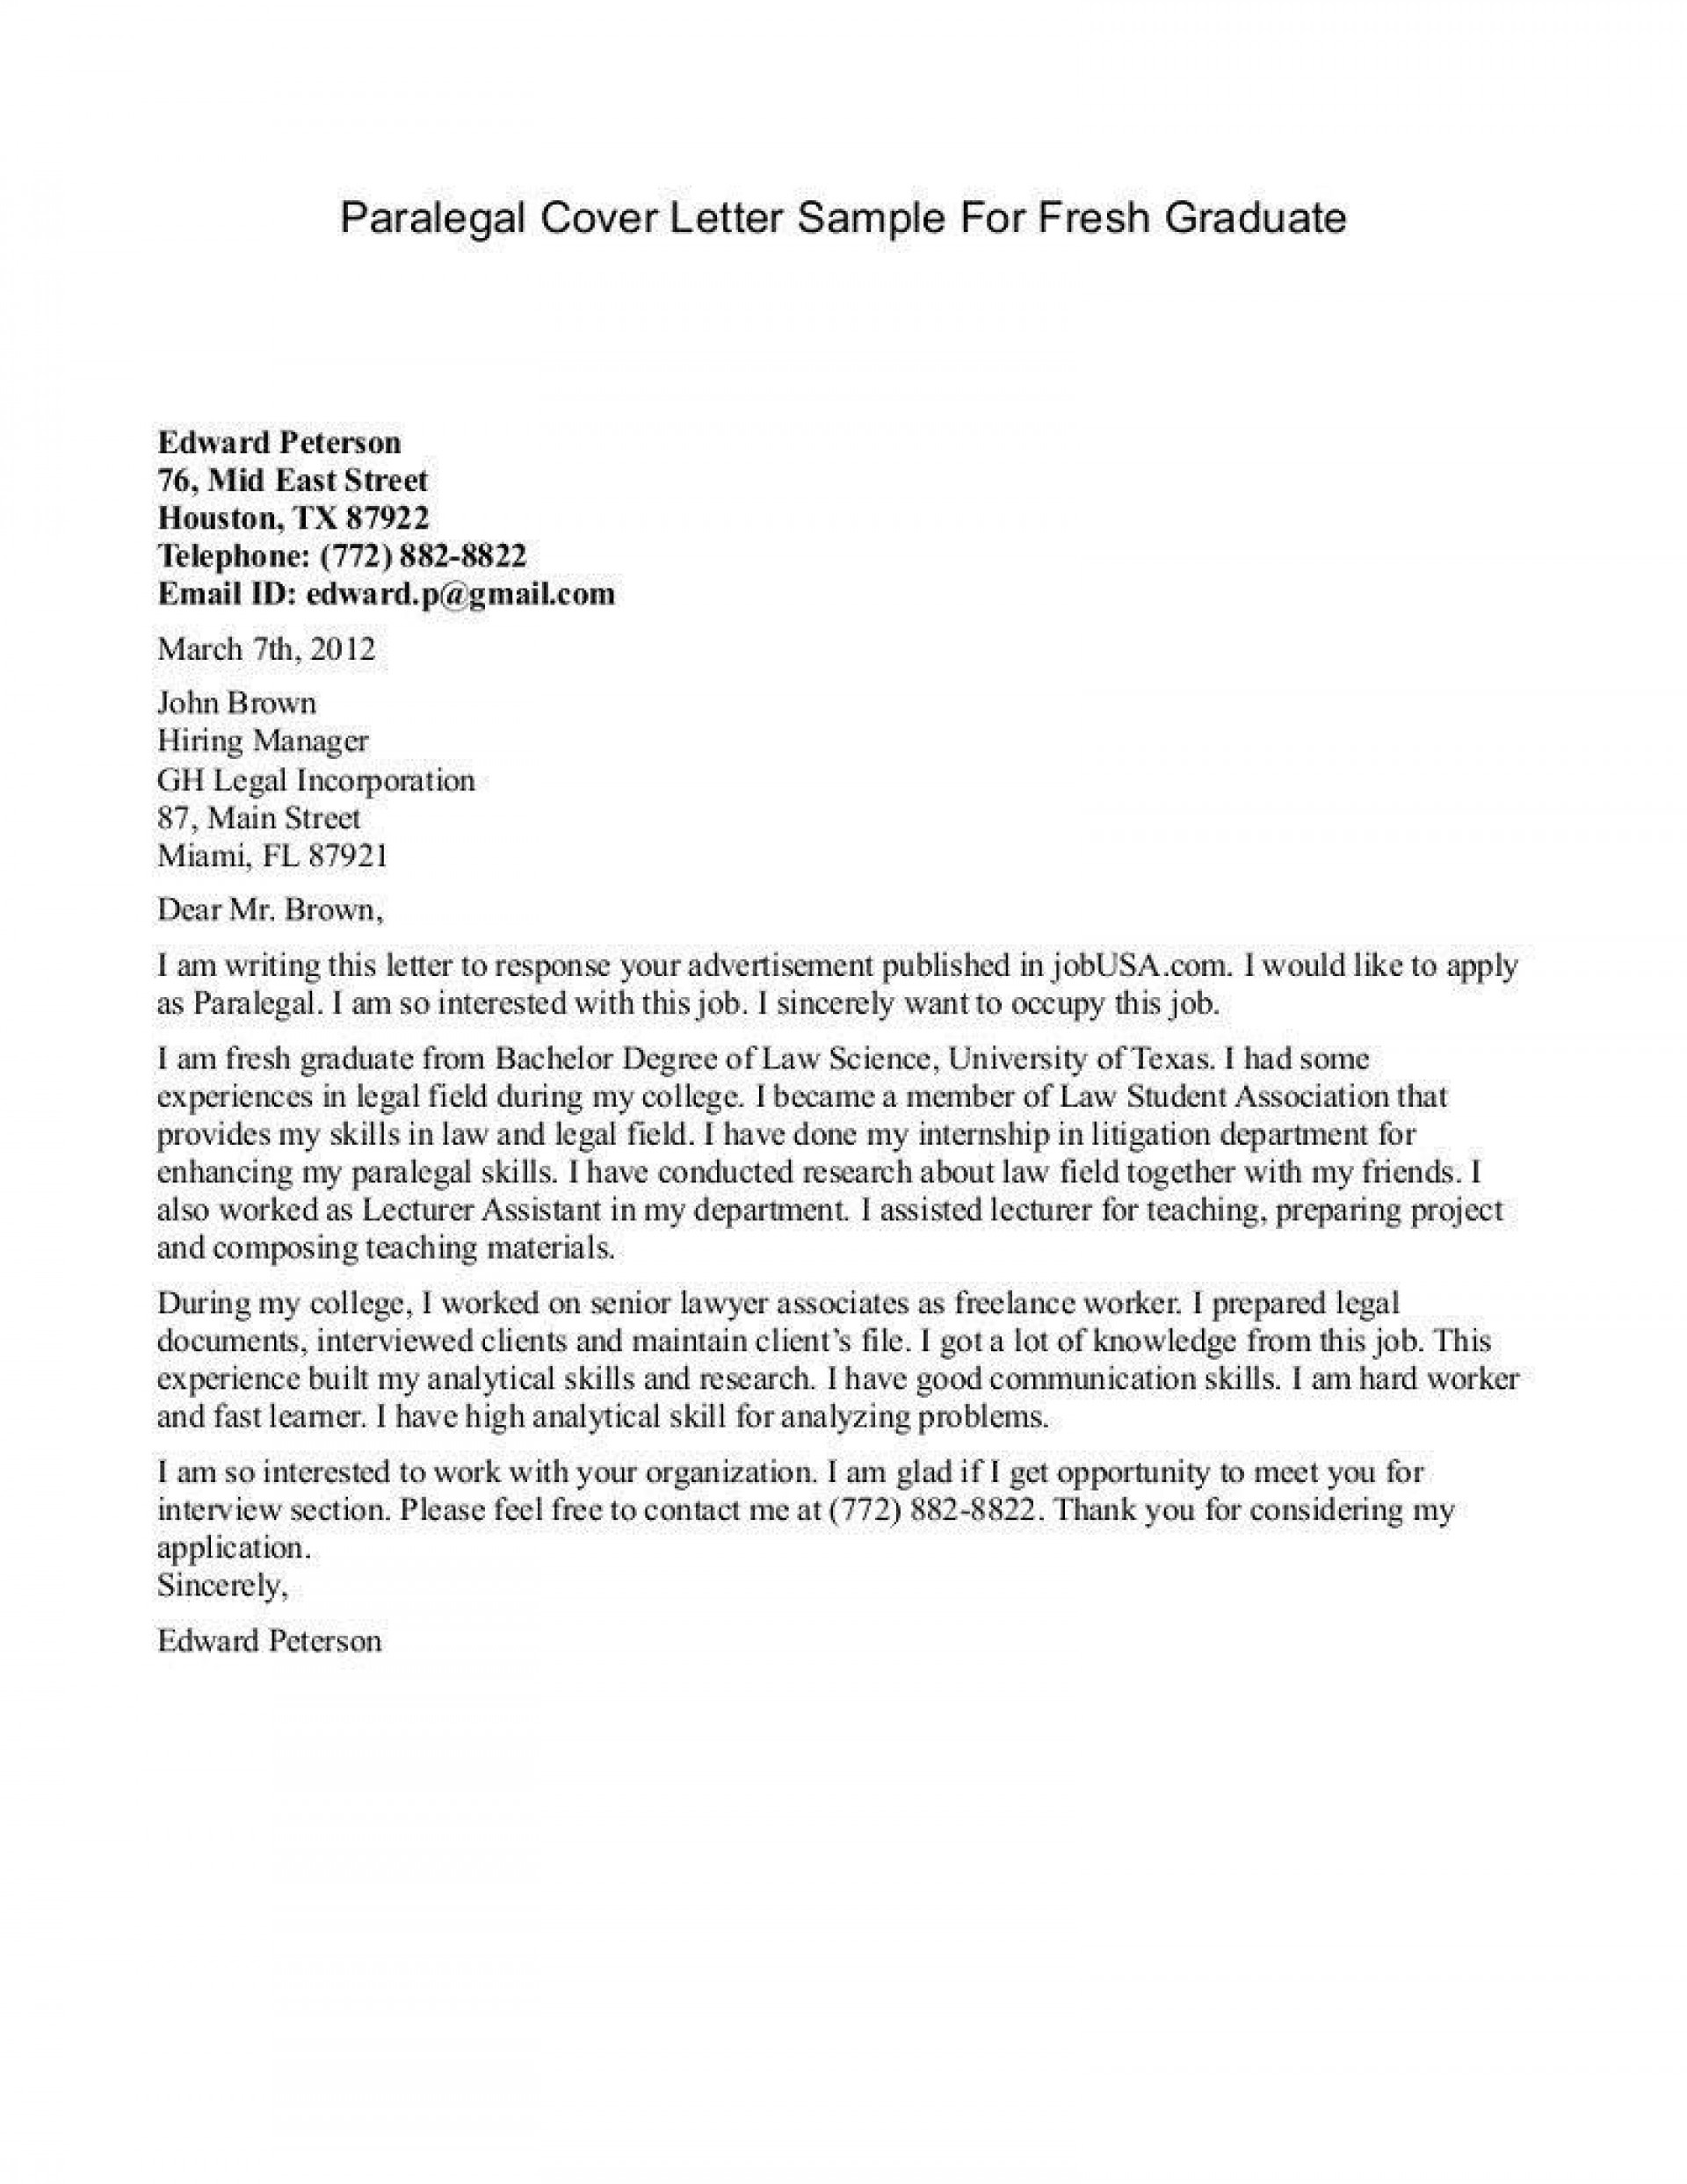 004 Magnificent Cover Letter Sample Template For Fresh Graduate In Marketing Highest Quality 1920